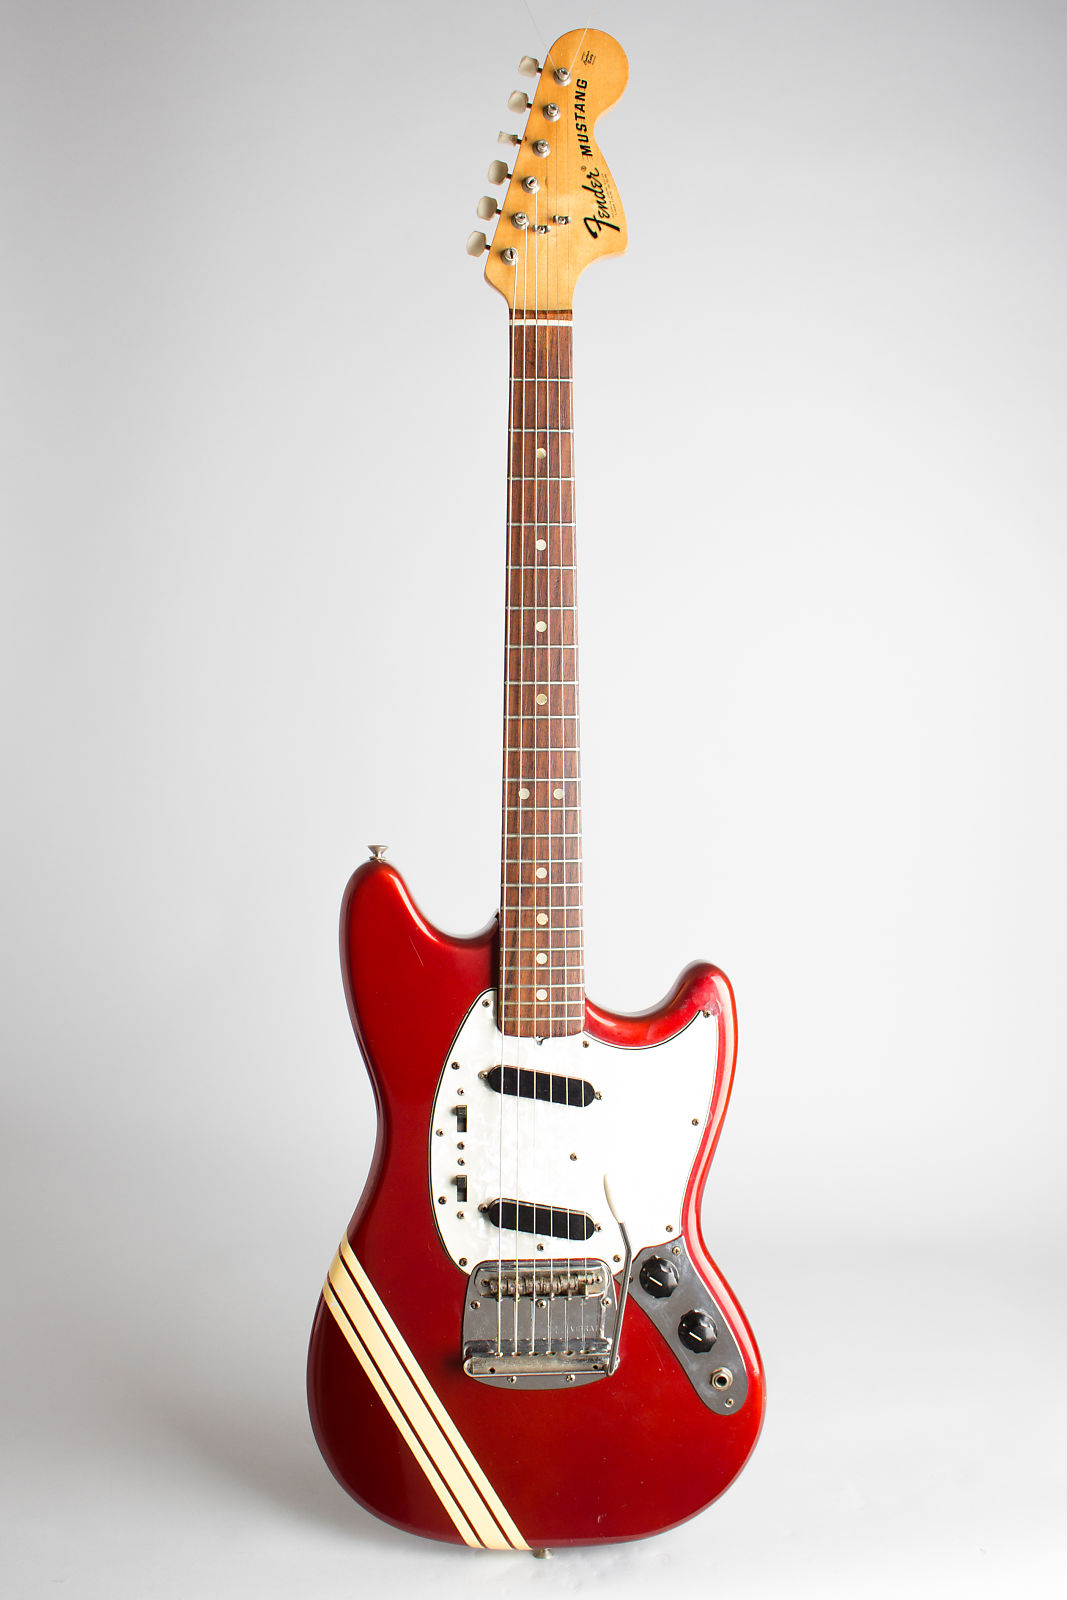 Fender  Competition Mustang Solid Body Electric Guitar (1973), ser. #436174, original grey hard shell case.